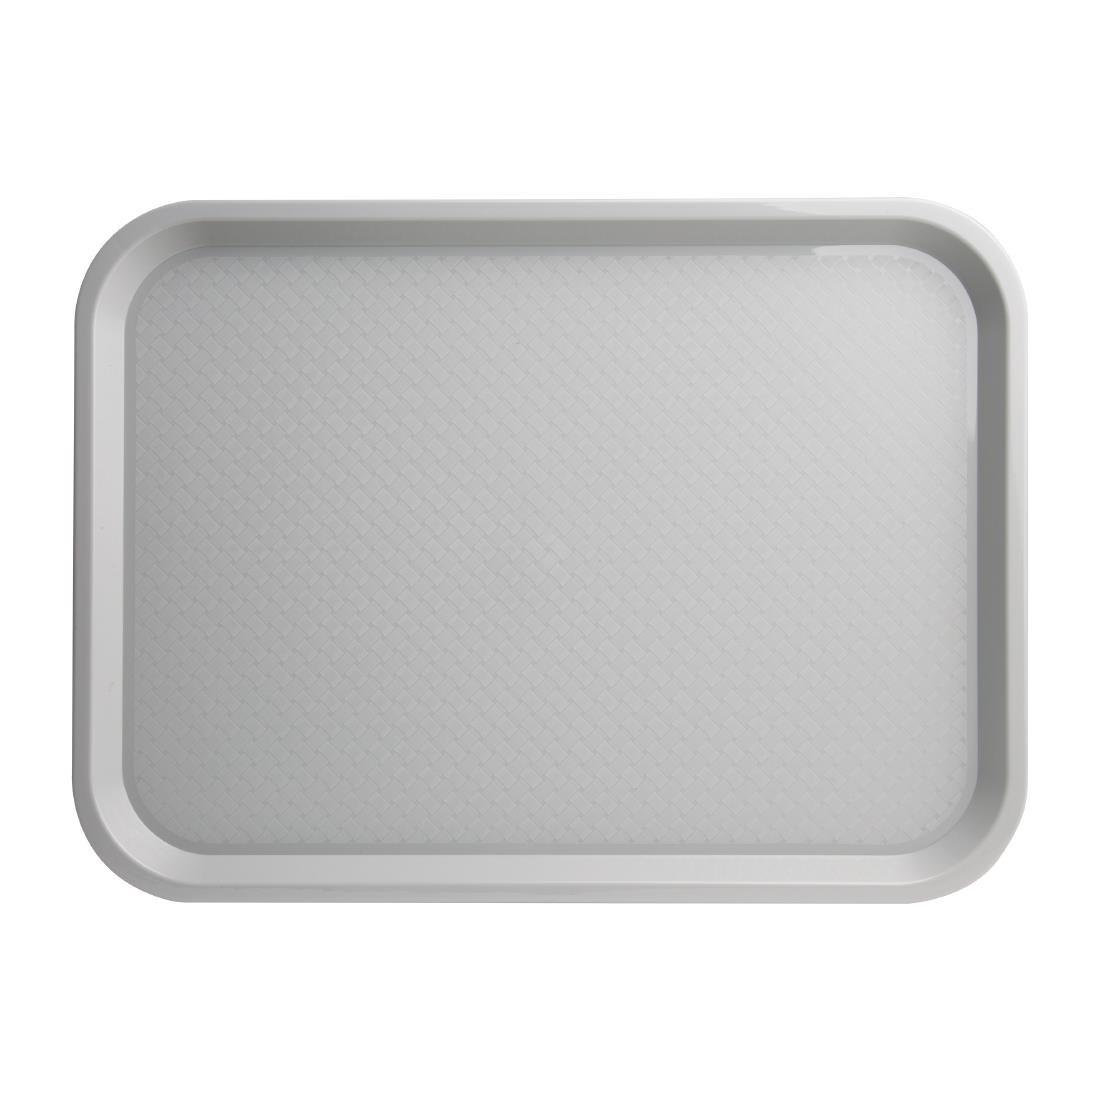 Kristallon Plastic Fast Food Tray Grey Large Next working day UK Delivery